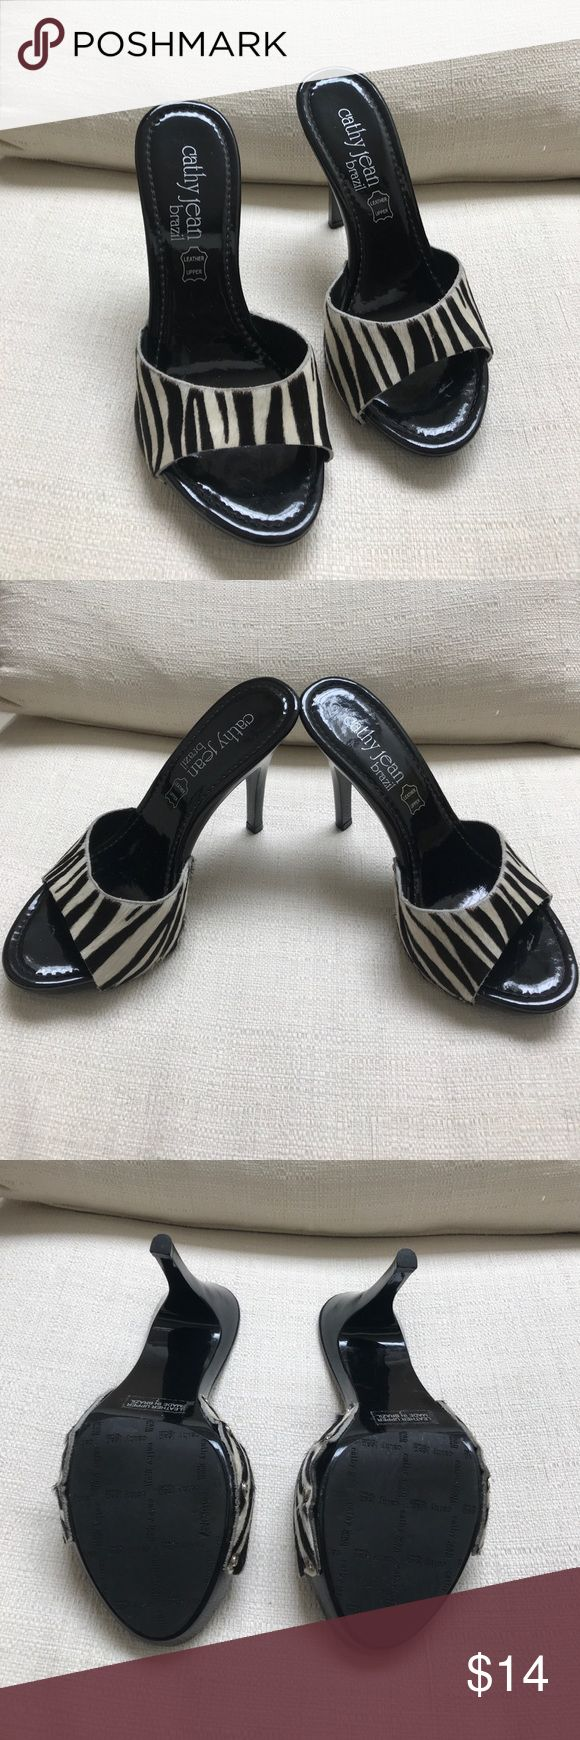 "Cathy Jean Brazil Animal Print Mules Cathy Jean Brazil animal print mules, leather upper, inside black patent, size 7, 4.5"" heel, good condition Cathy Jean Shoes Mules & Clogs"